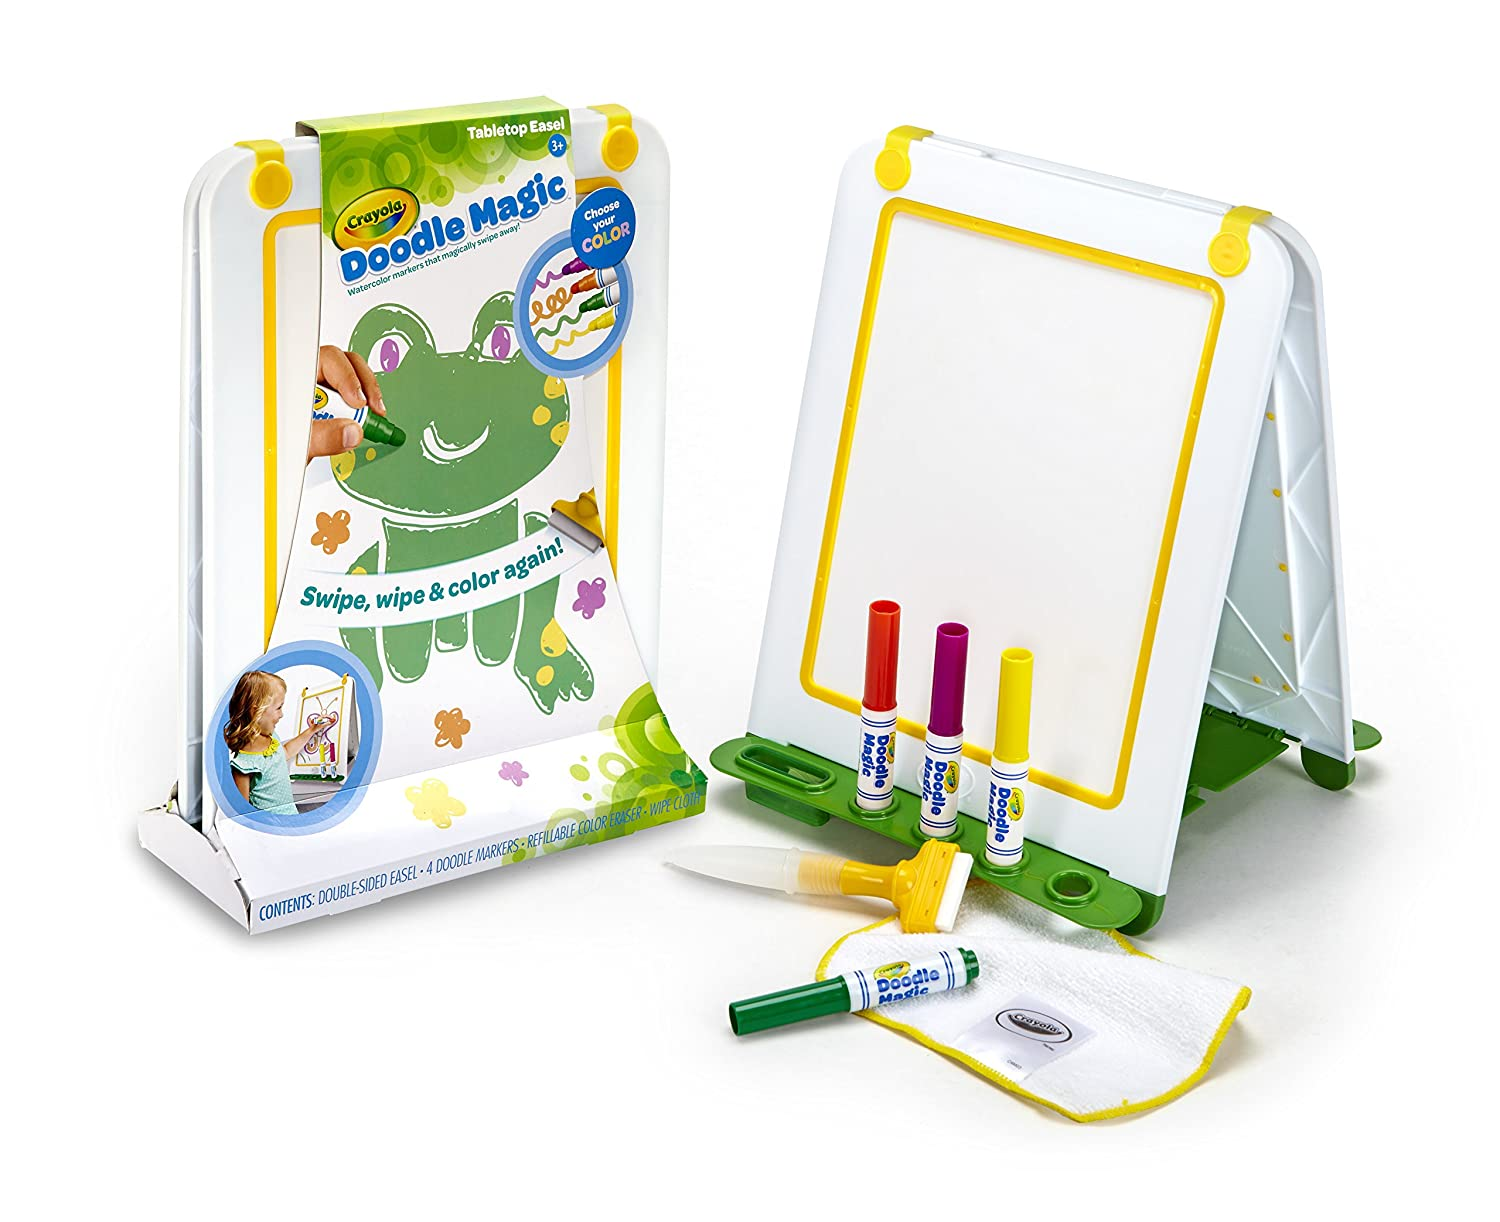 Crayola Doodle Magic Tabletop Double Sided Easel with 4 ColouROT Markers